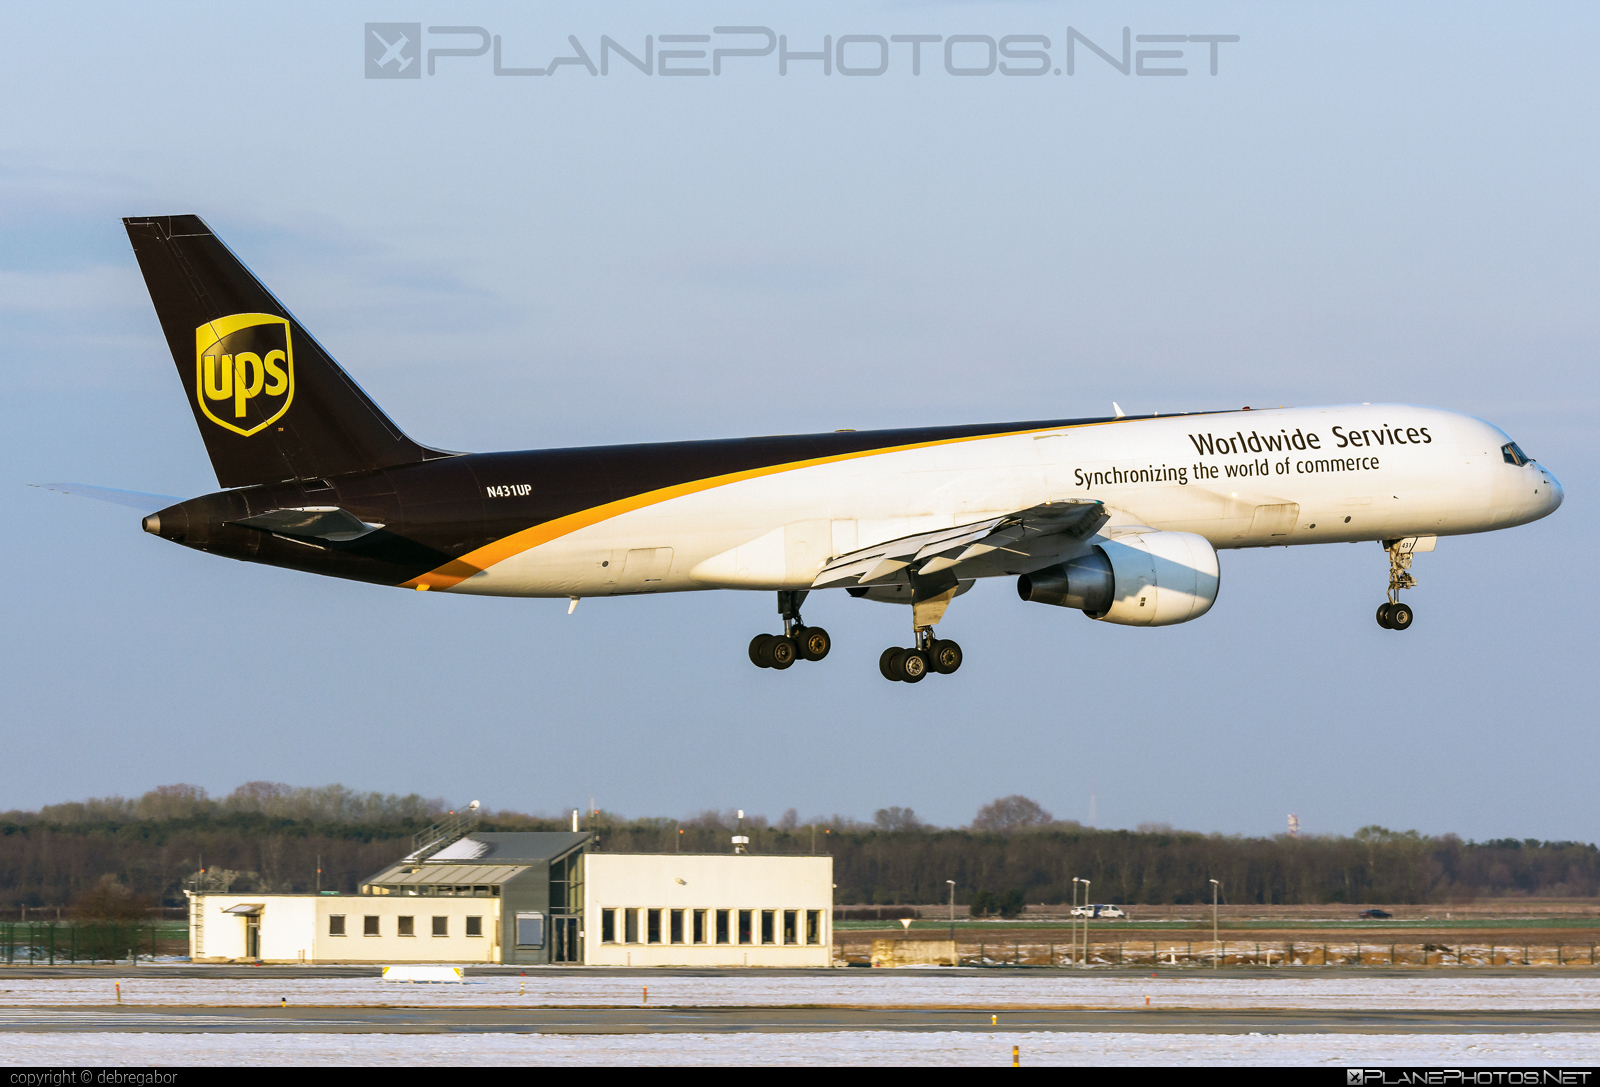 Boeing 757-200PF - N431UP operated by United Parcel Service (UPS) #b757 #boeing #boeing757 #ups #upsairlines